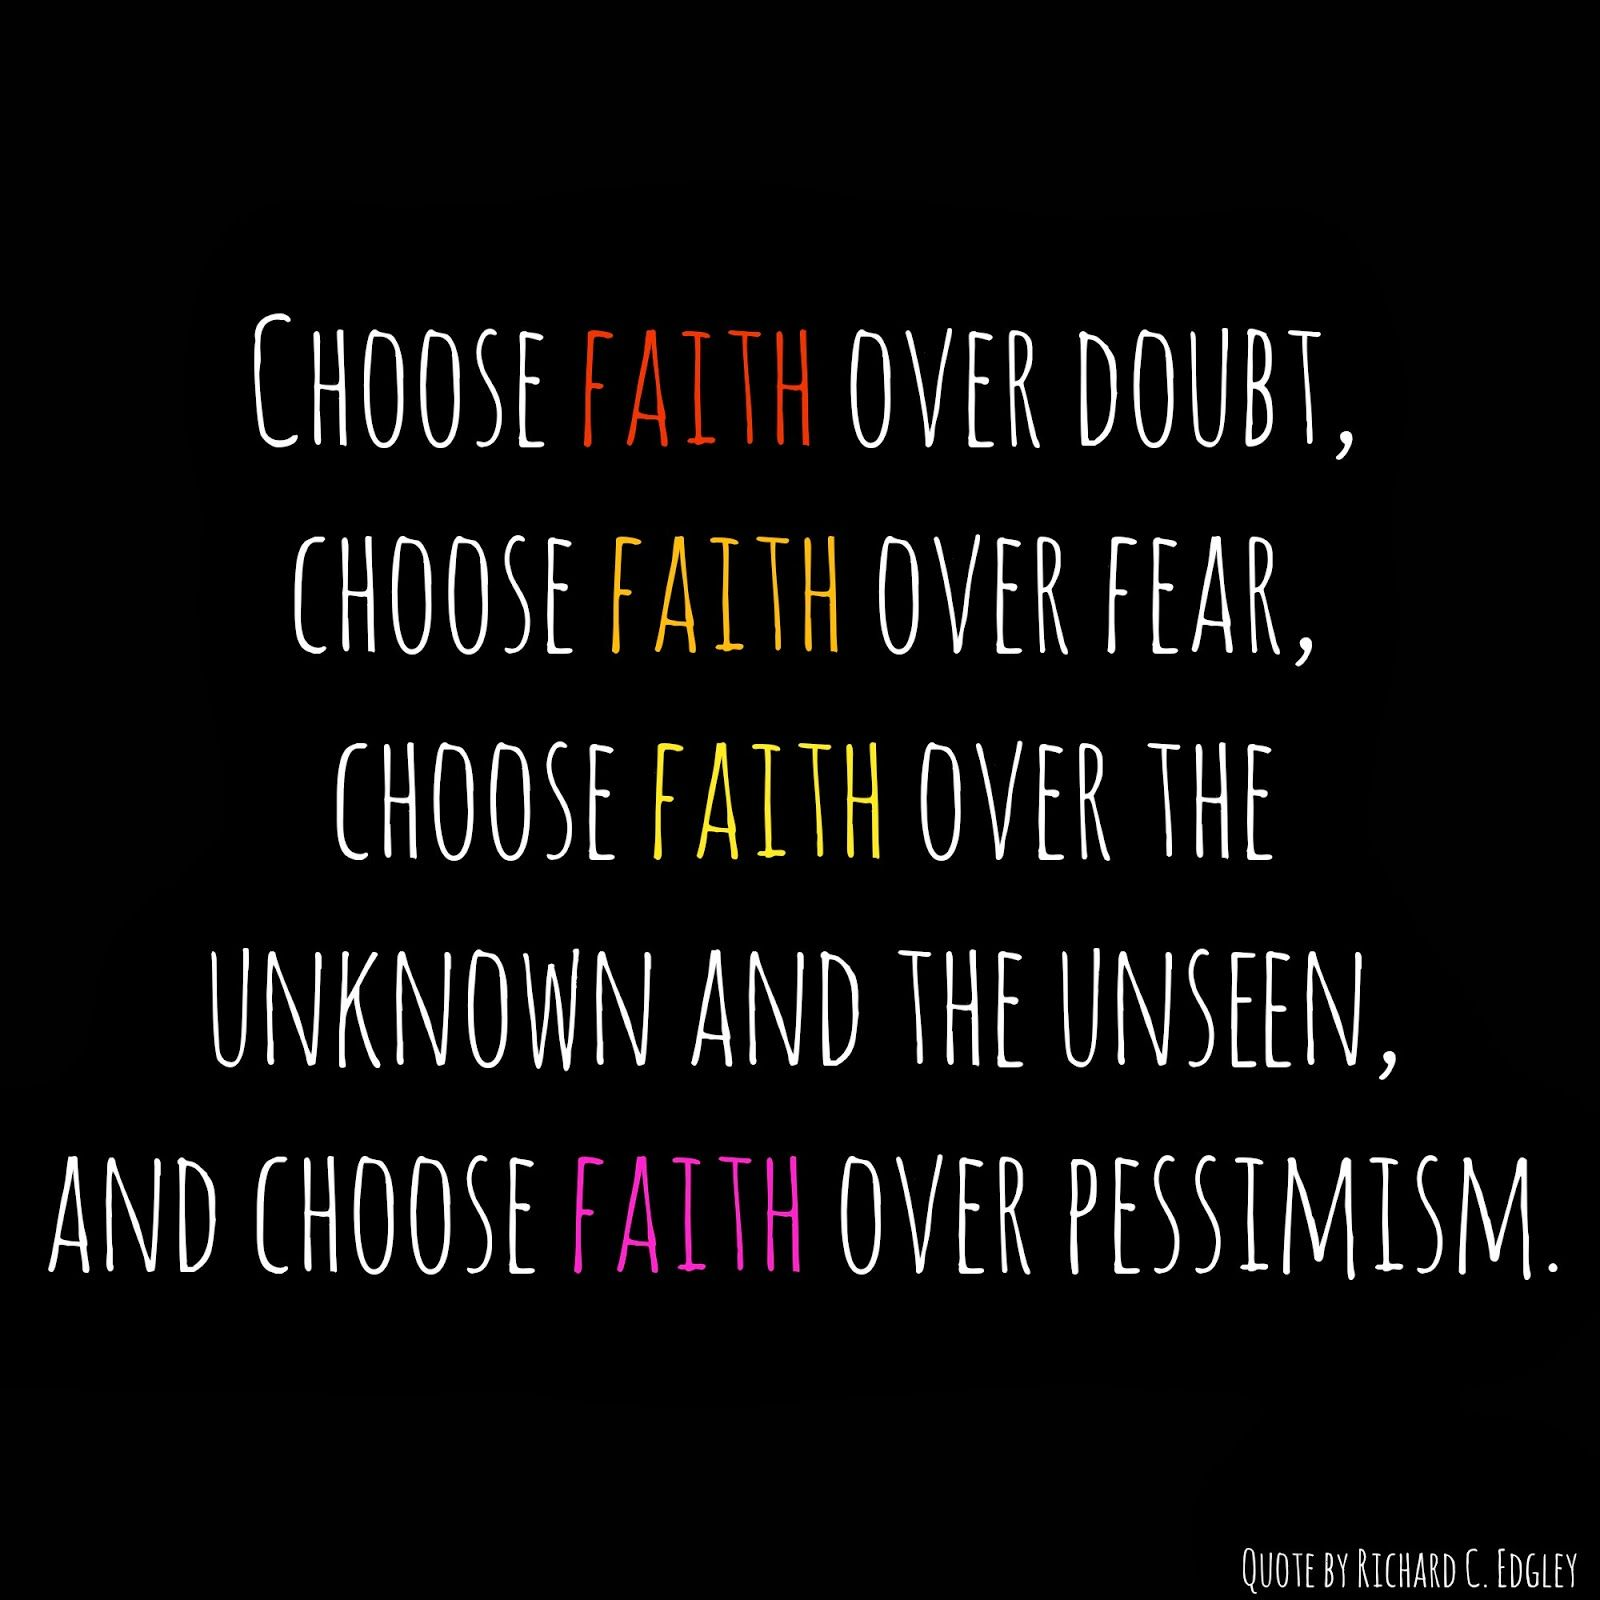 Famous Quotes About Fear: Choose Faith Over Fear Quote And Free Printable